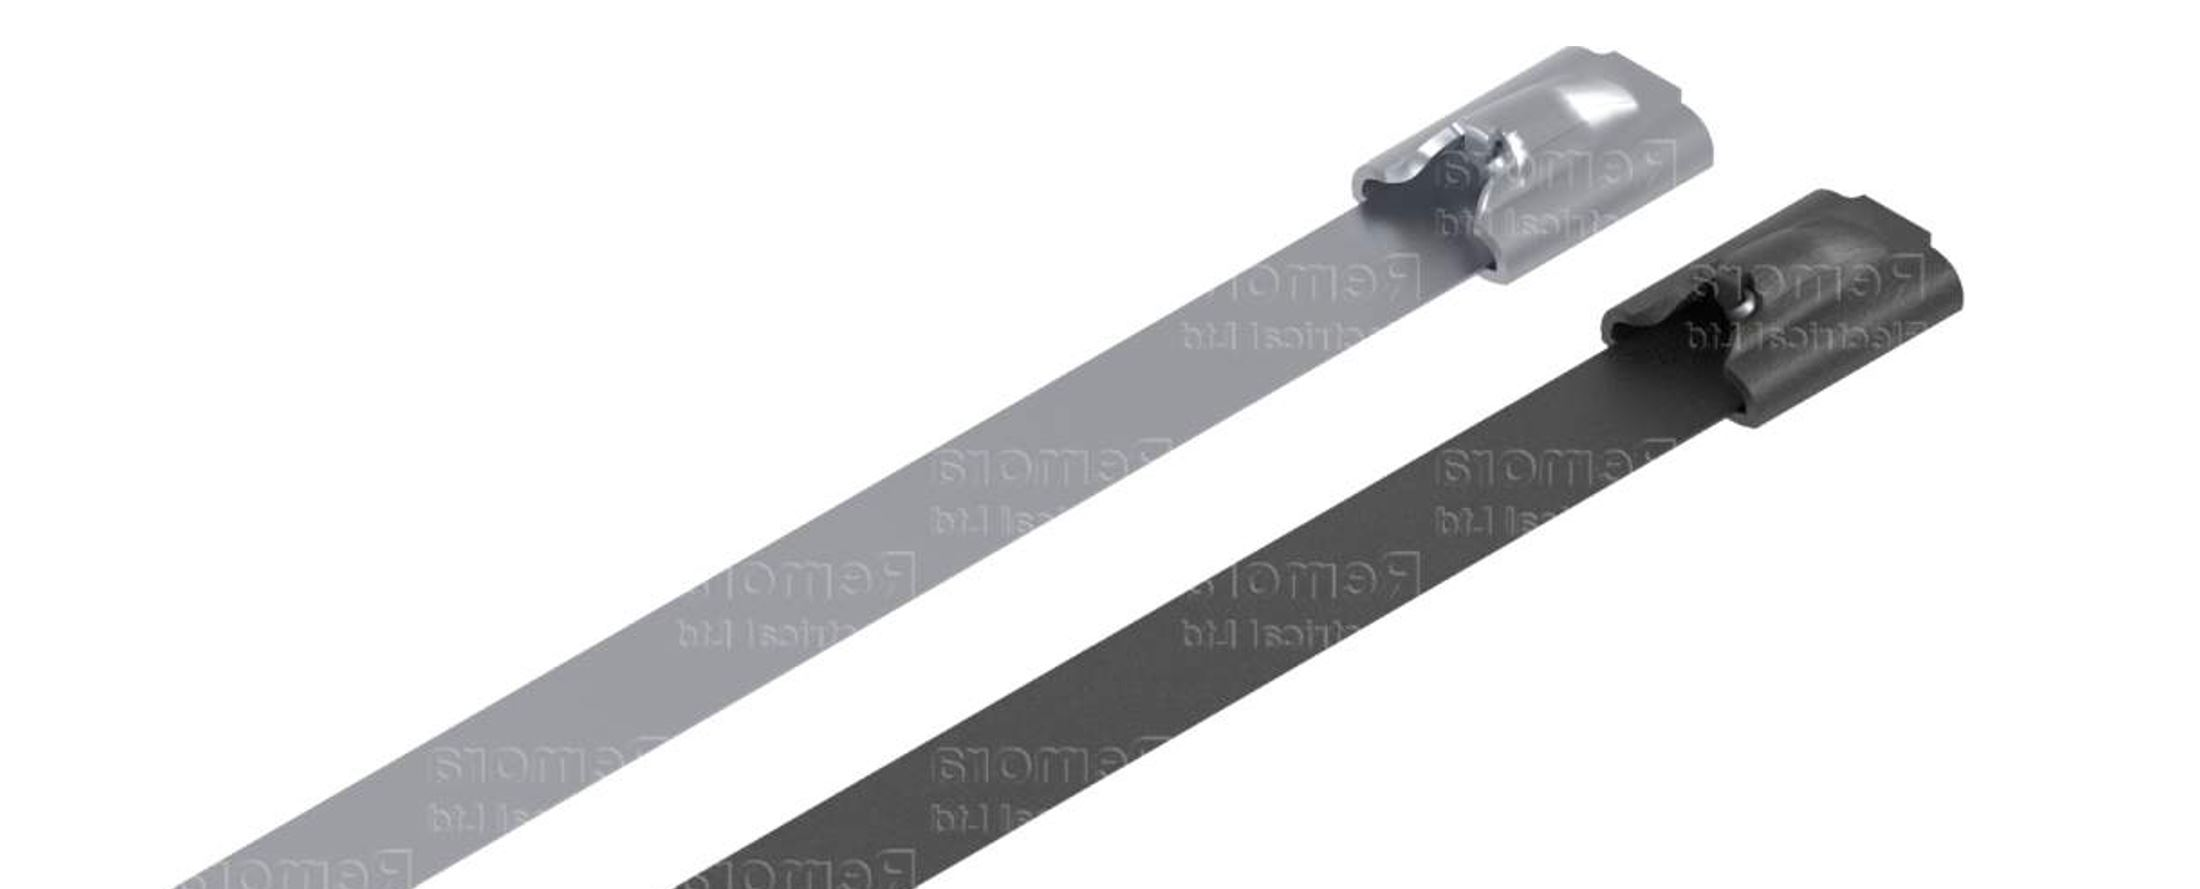 cable ties stainless